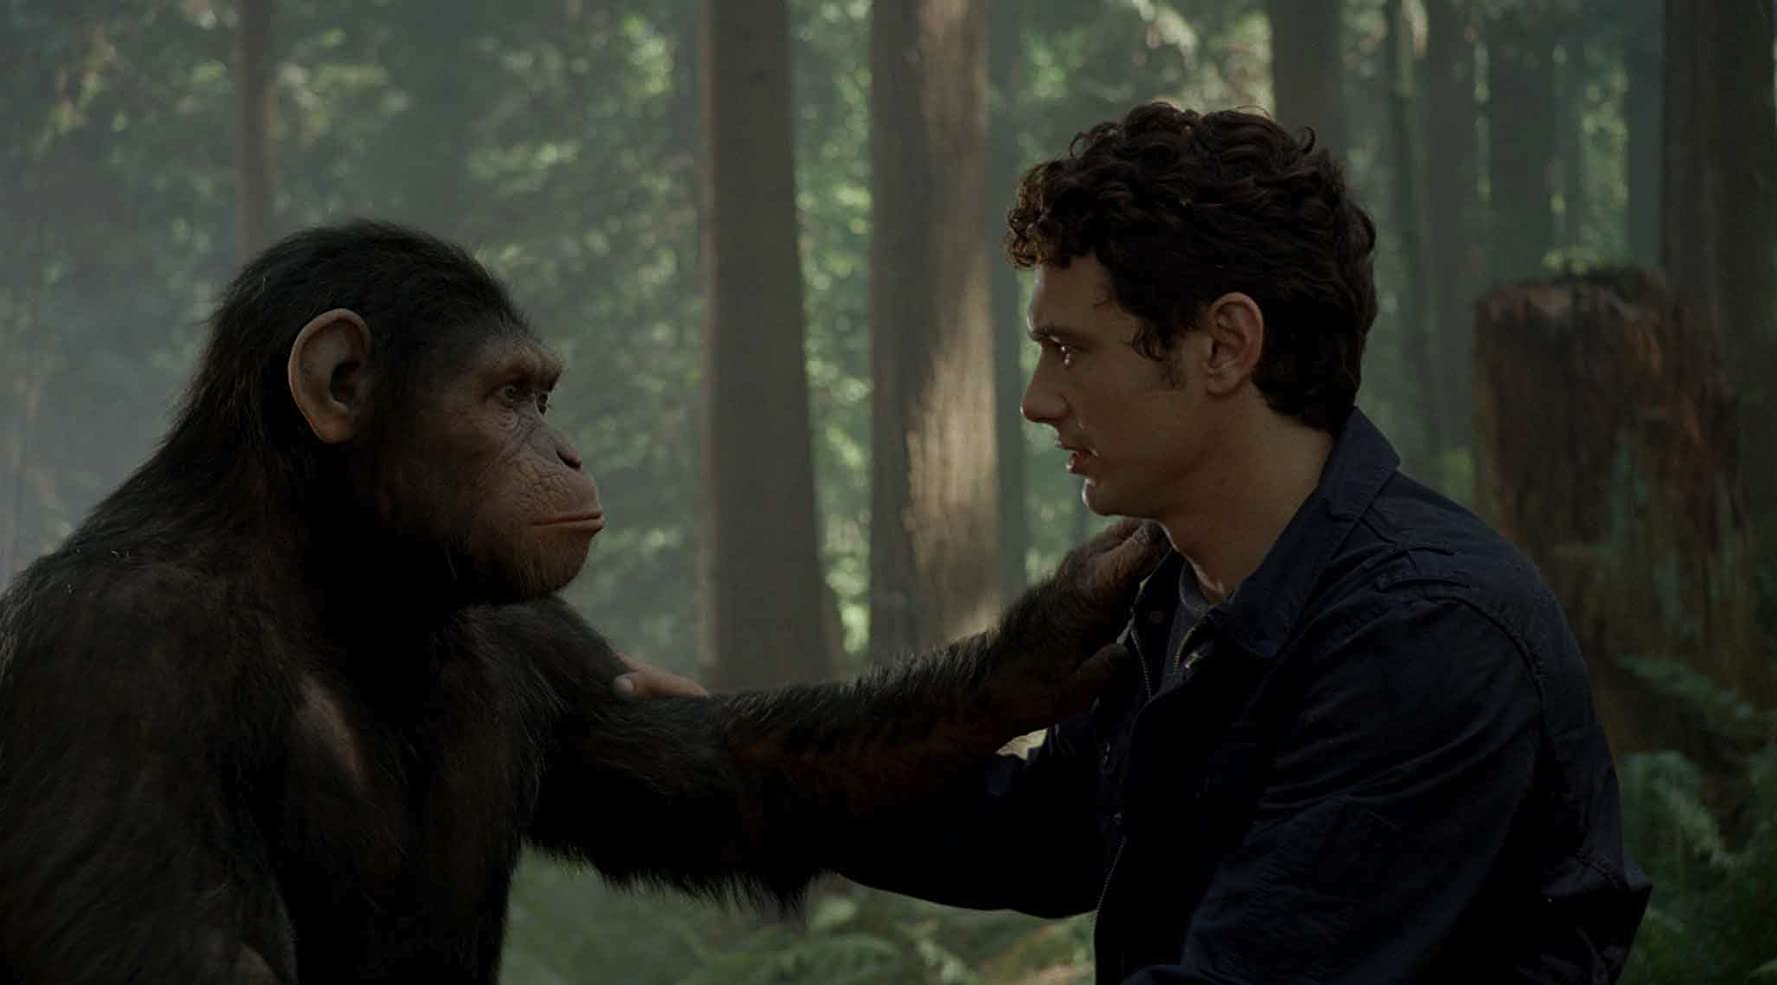 Image result for Rise of the planet of the apes (2011)